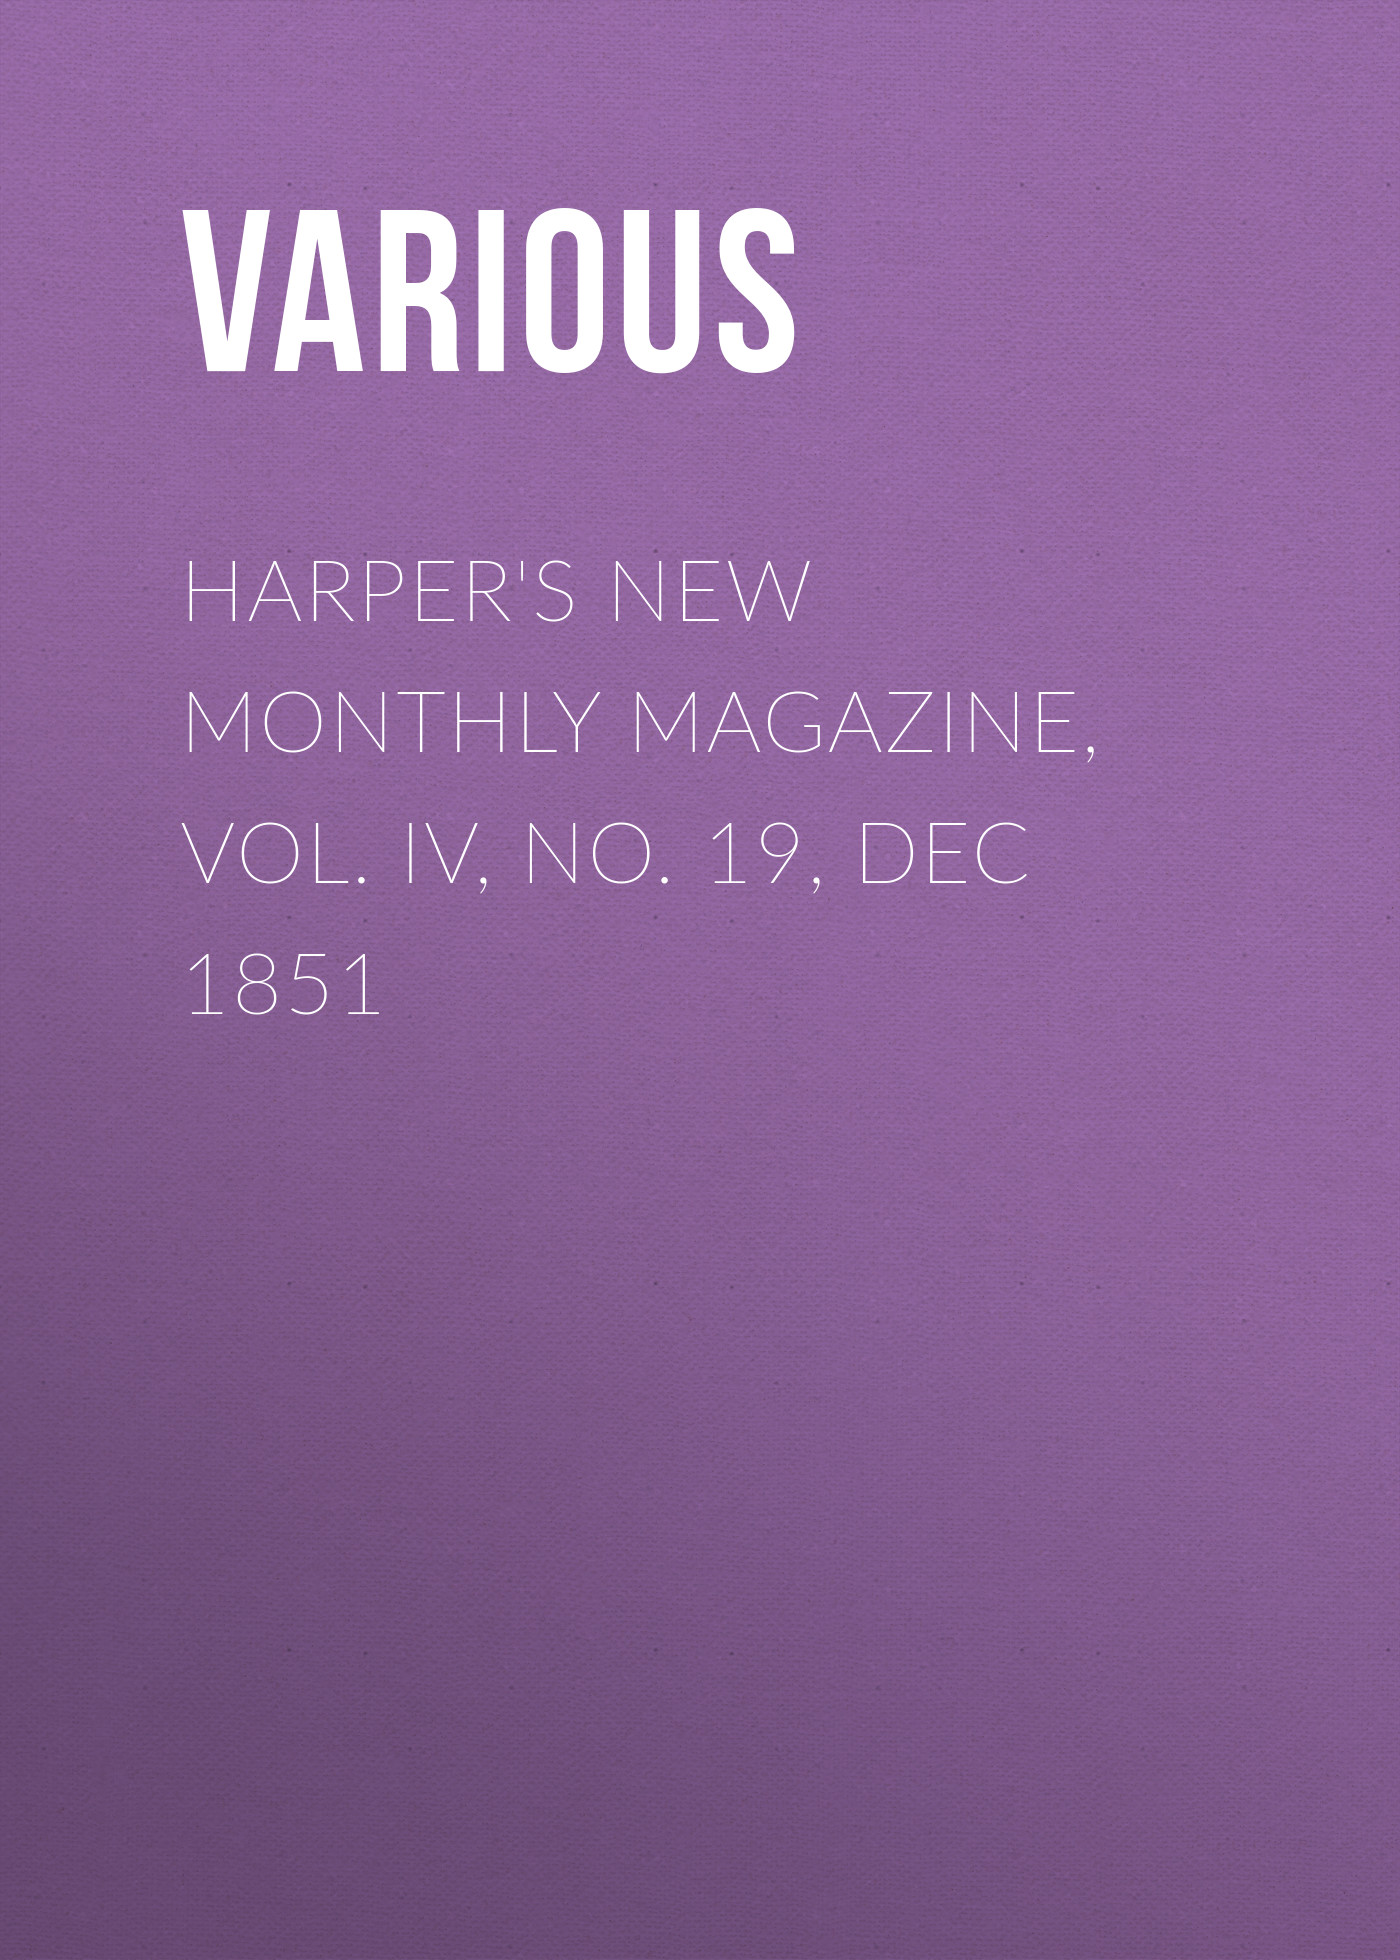 Various Harper's New Monthly Magazine, Vol. IV, No. 19, Dec 1851 various harper s new monthly magazine vol iv no xx january 1852